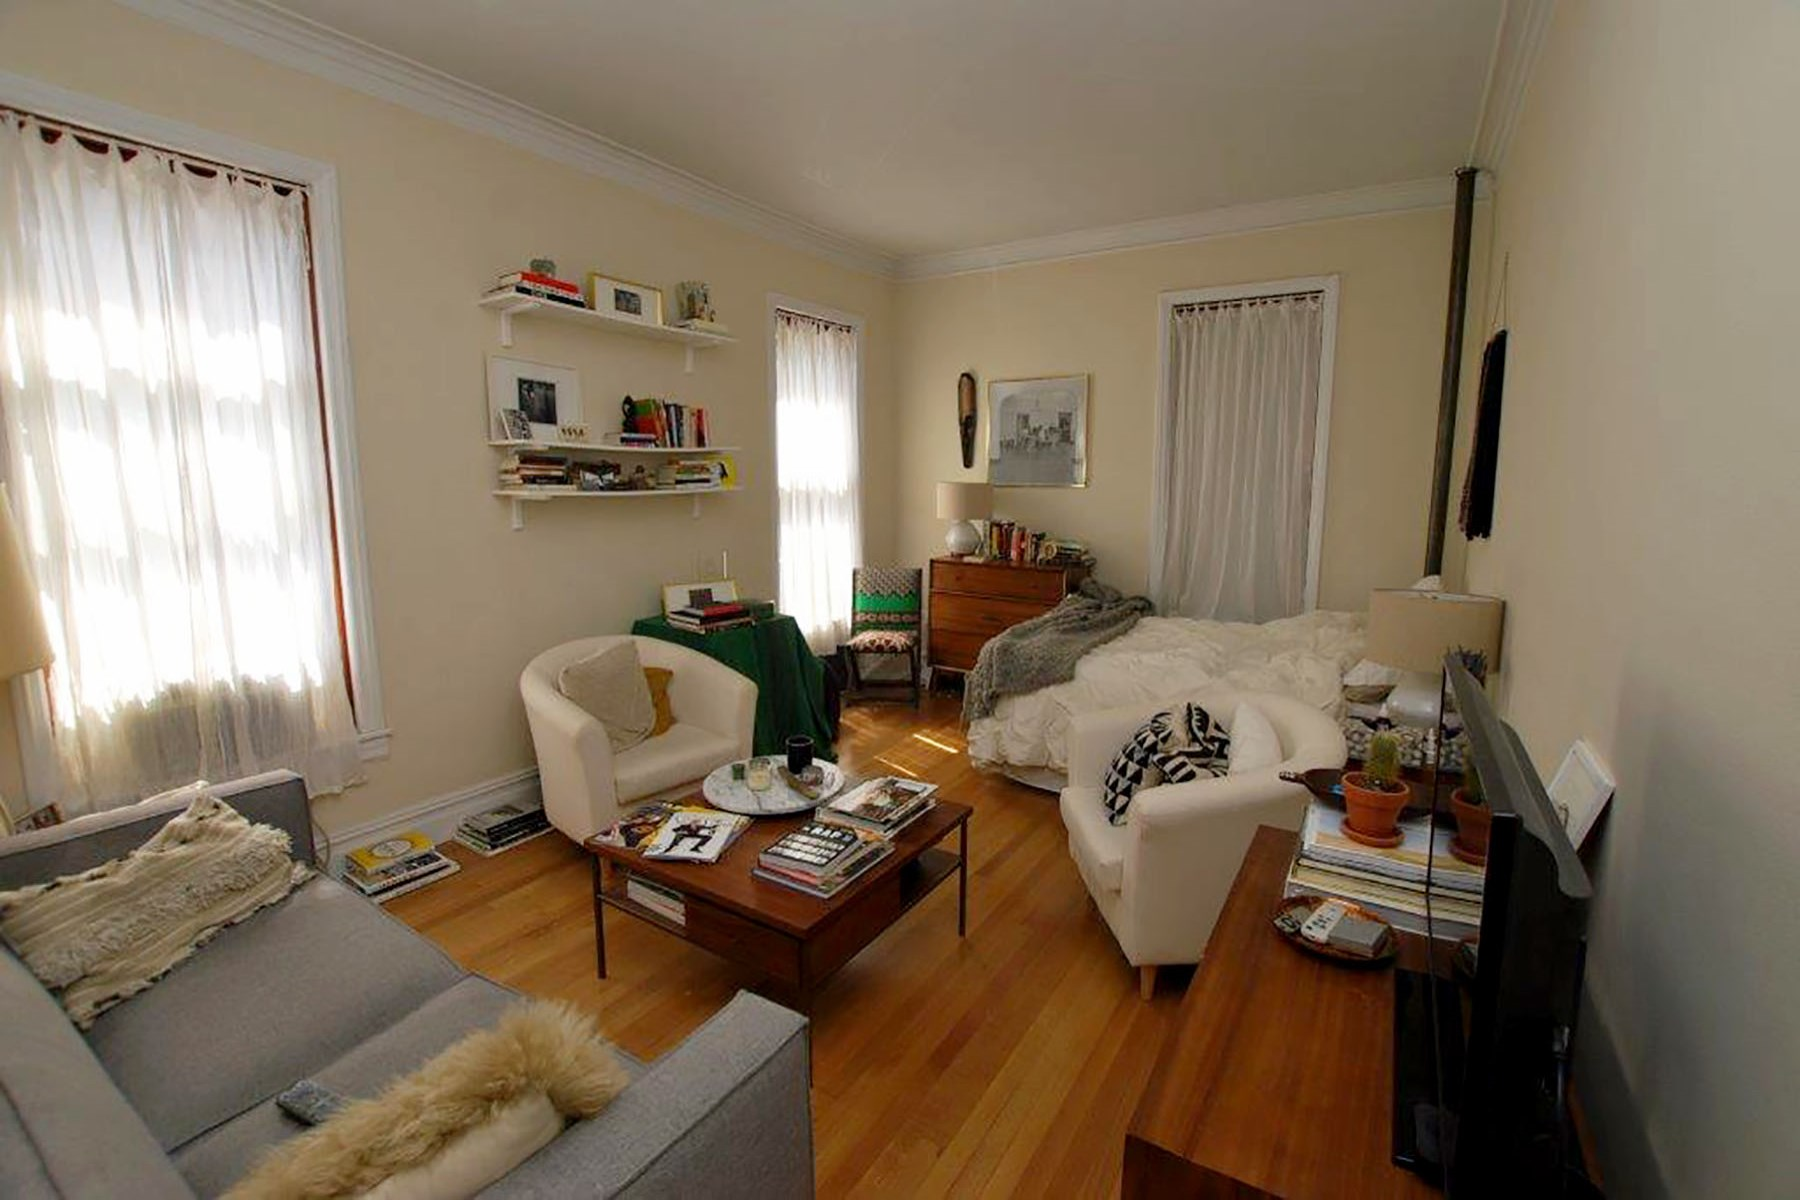 Apartment for Rent at 100 W 73rd Street Apt. 1C 100 West 73rd Street Apt 1C Upper West Side, New York, New York, 10023 United States